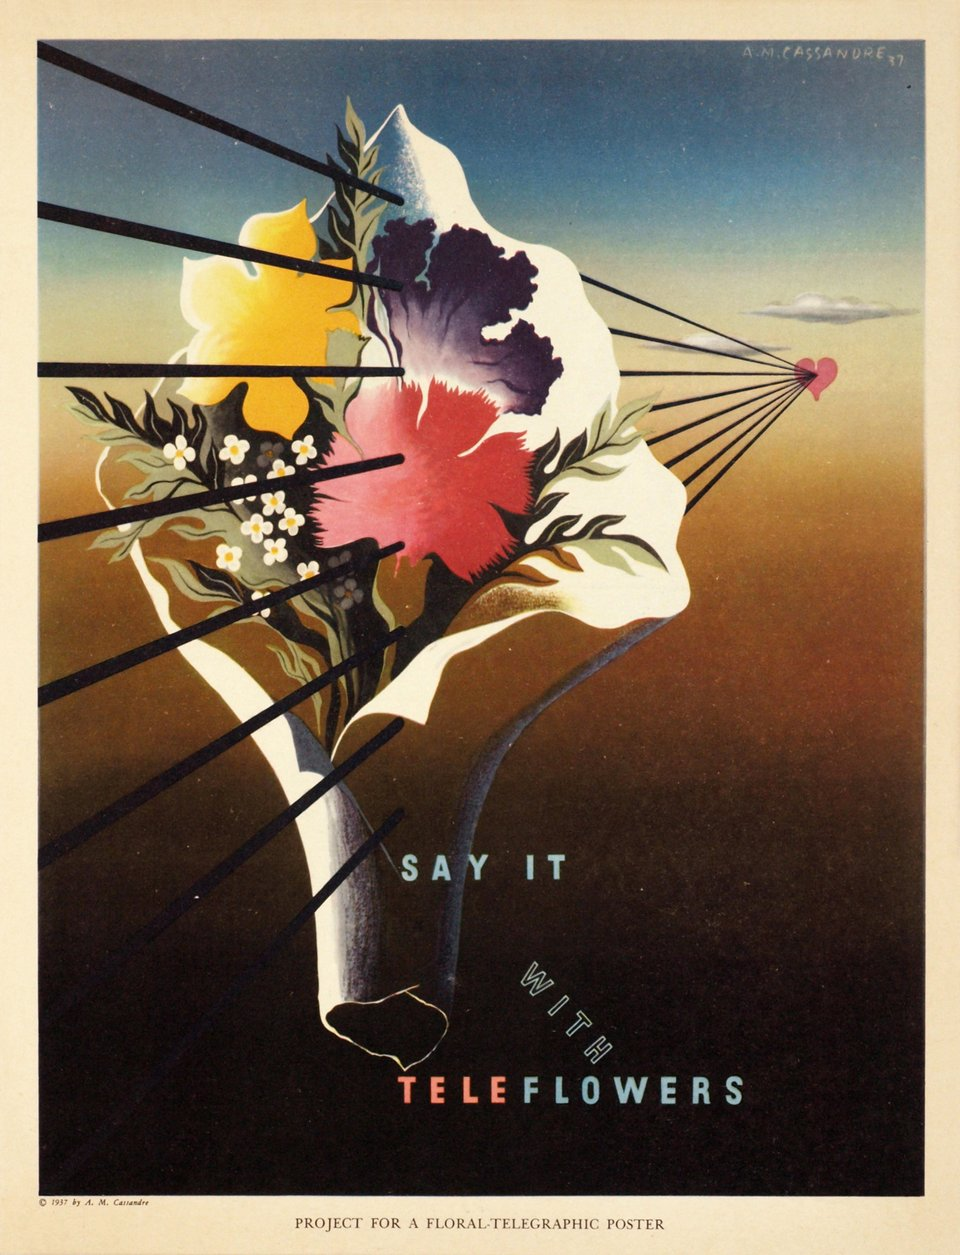 Say it with TeleFlowers, project for a floral telegraphic poster – Vintage poster – A.M. CASSANDRE – 1937